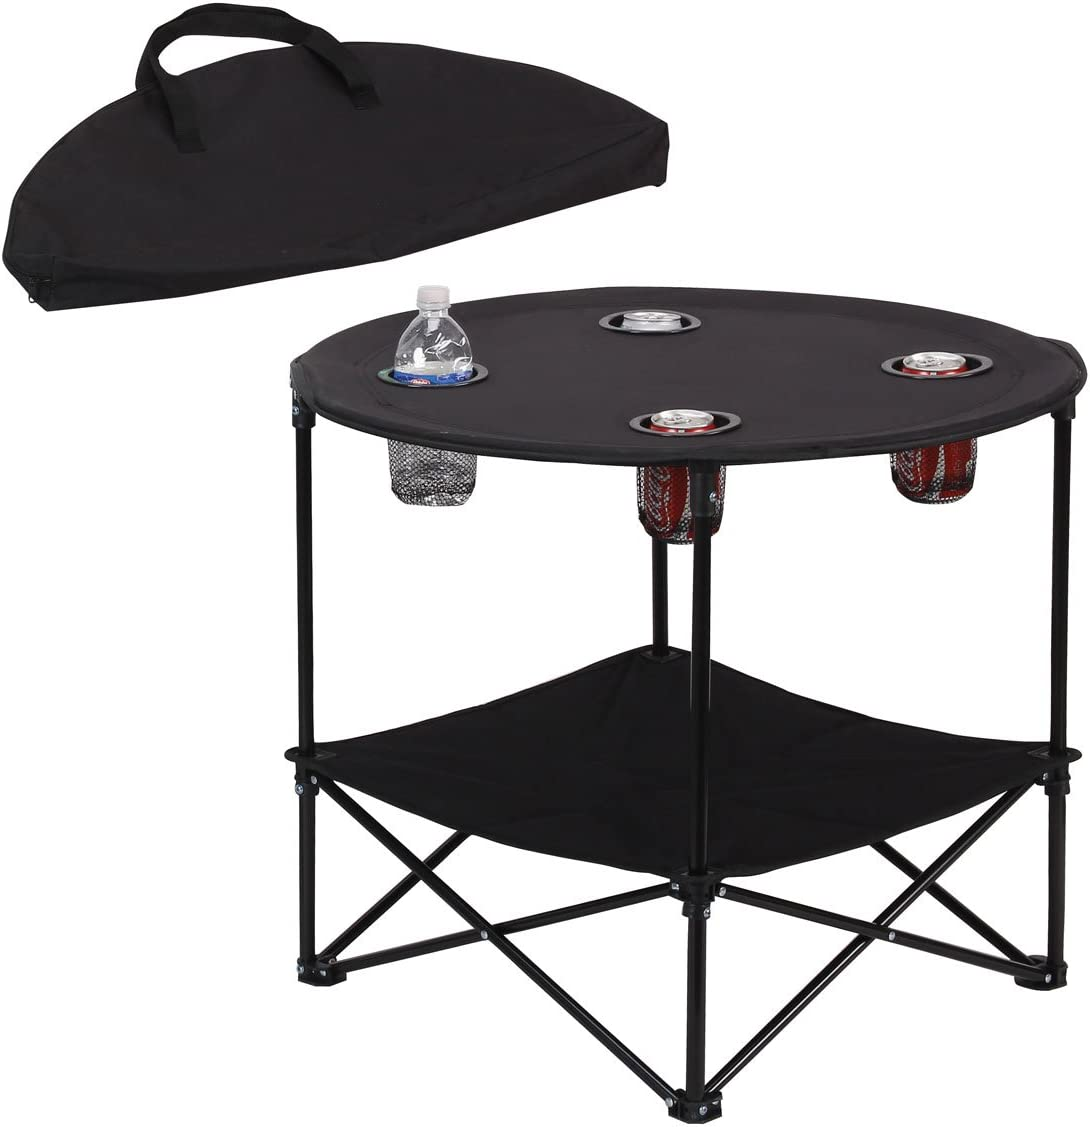 Amazon Com Preferred Nation Folding Table Polyester With Metal Frame 4 Mesh Cup Holders Compact Convenient Carry Case Included Black Furniture Decor